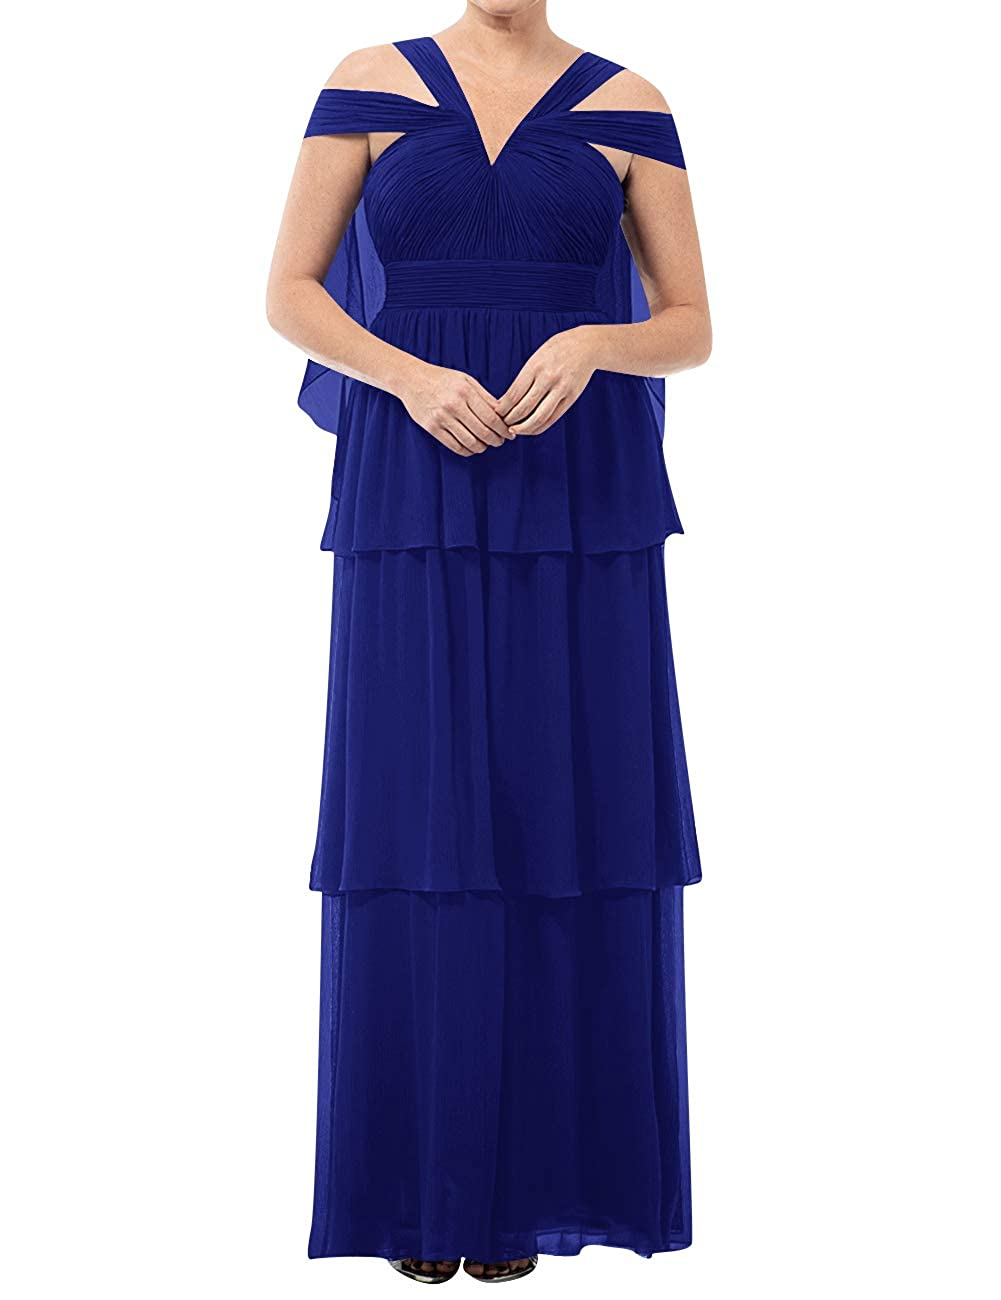 Royal bluee Mother of The Bride Dresses VNeck Long Mother of Groom Dress Plus Size Evening Gowns